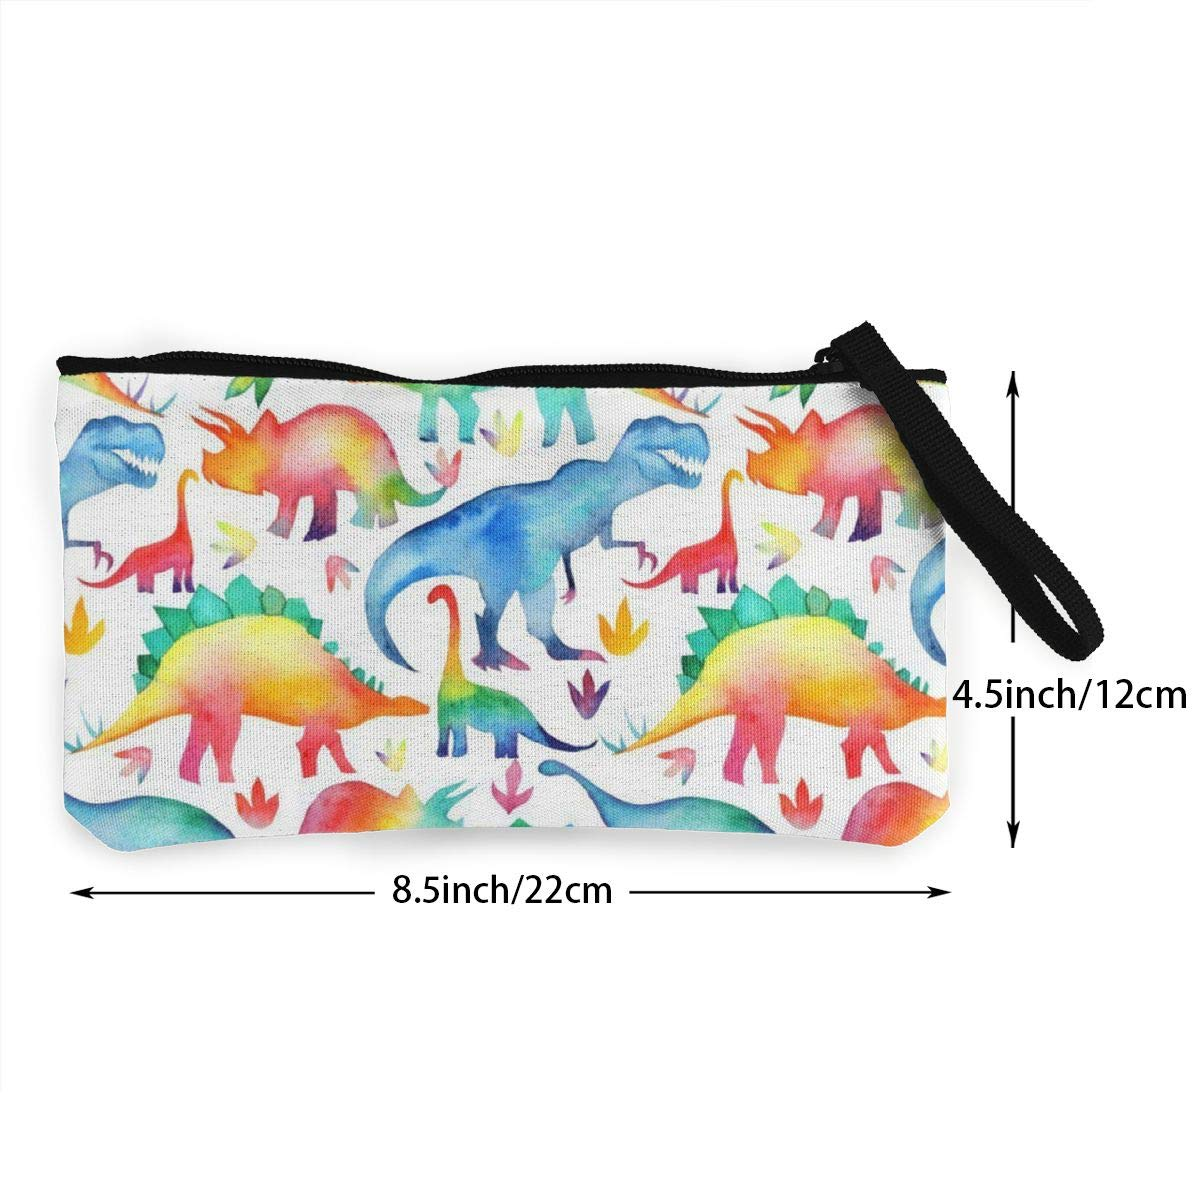 Rainbow Watercolour Dinosaurs Zipper Canvas Coin Purse Wallet Make Up Bag,Cellphone Bag With Handle